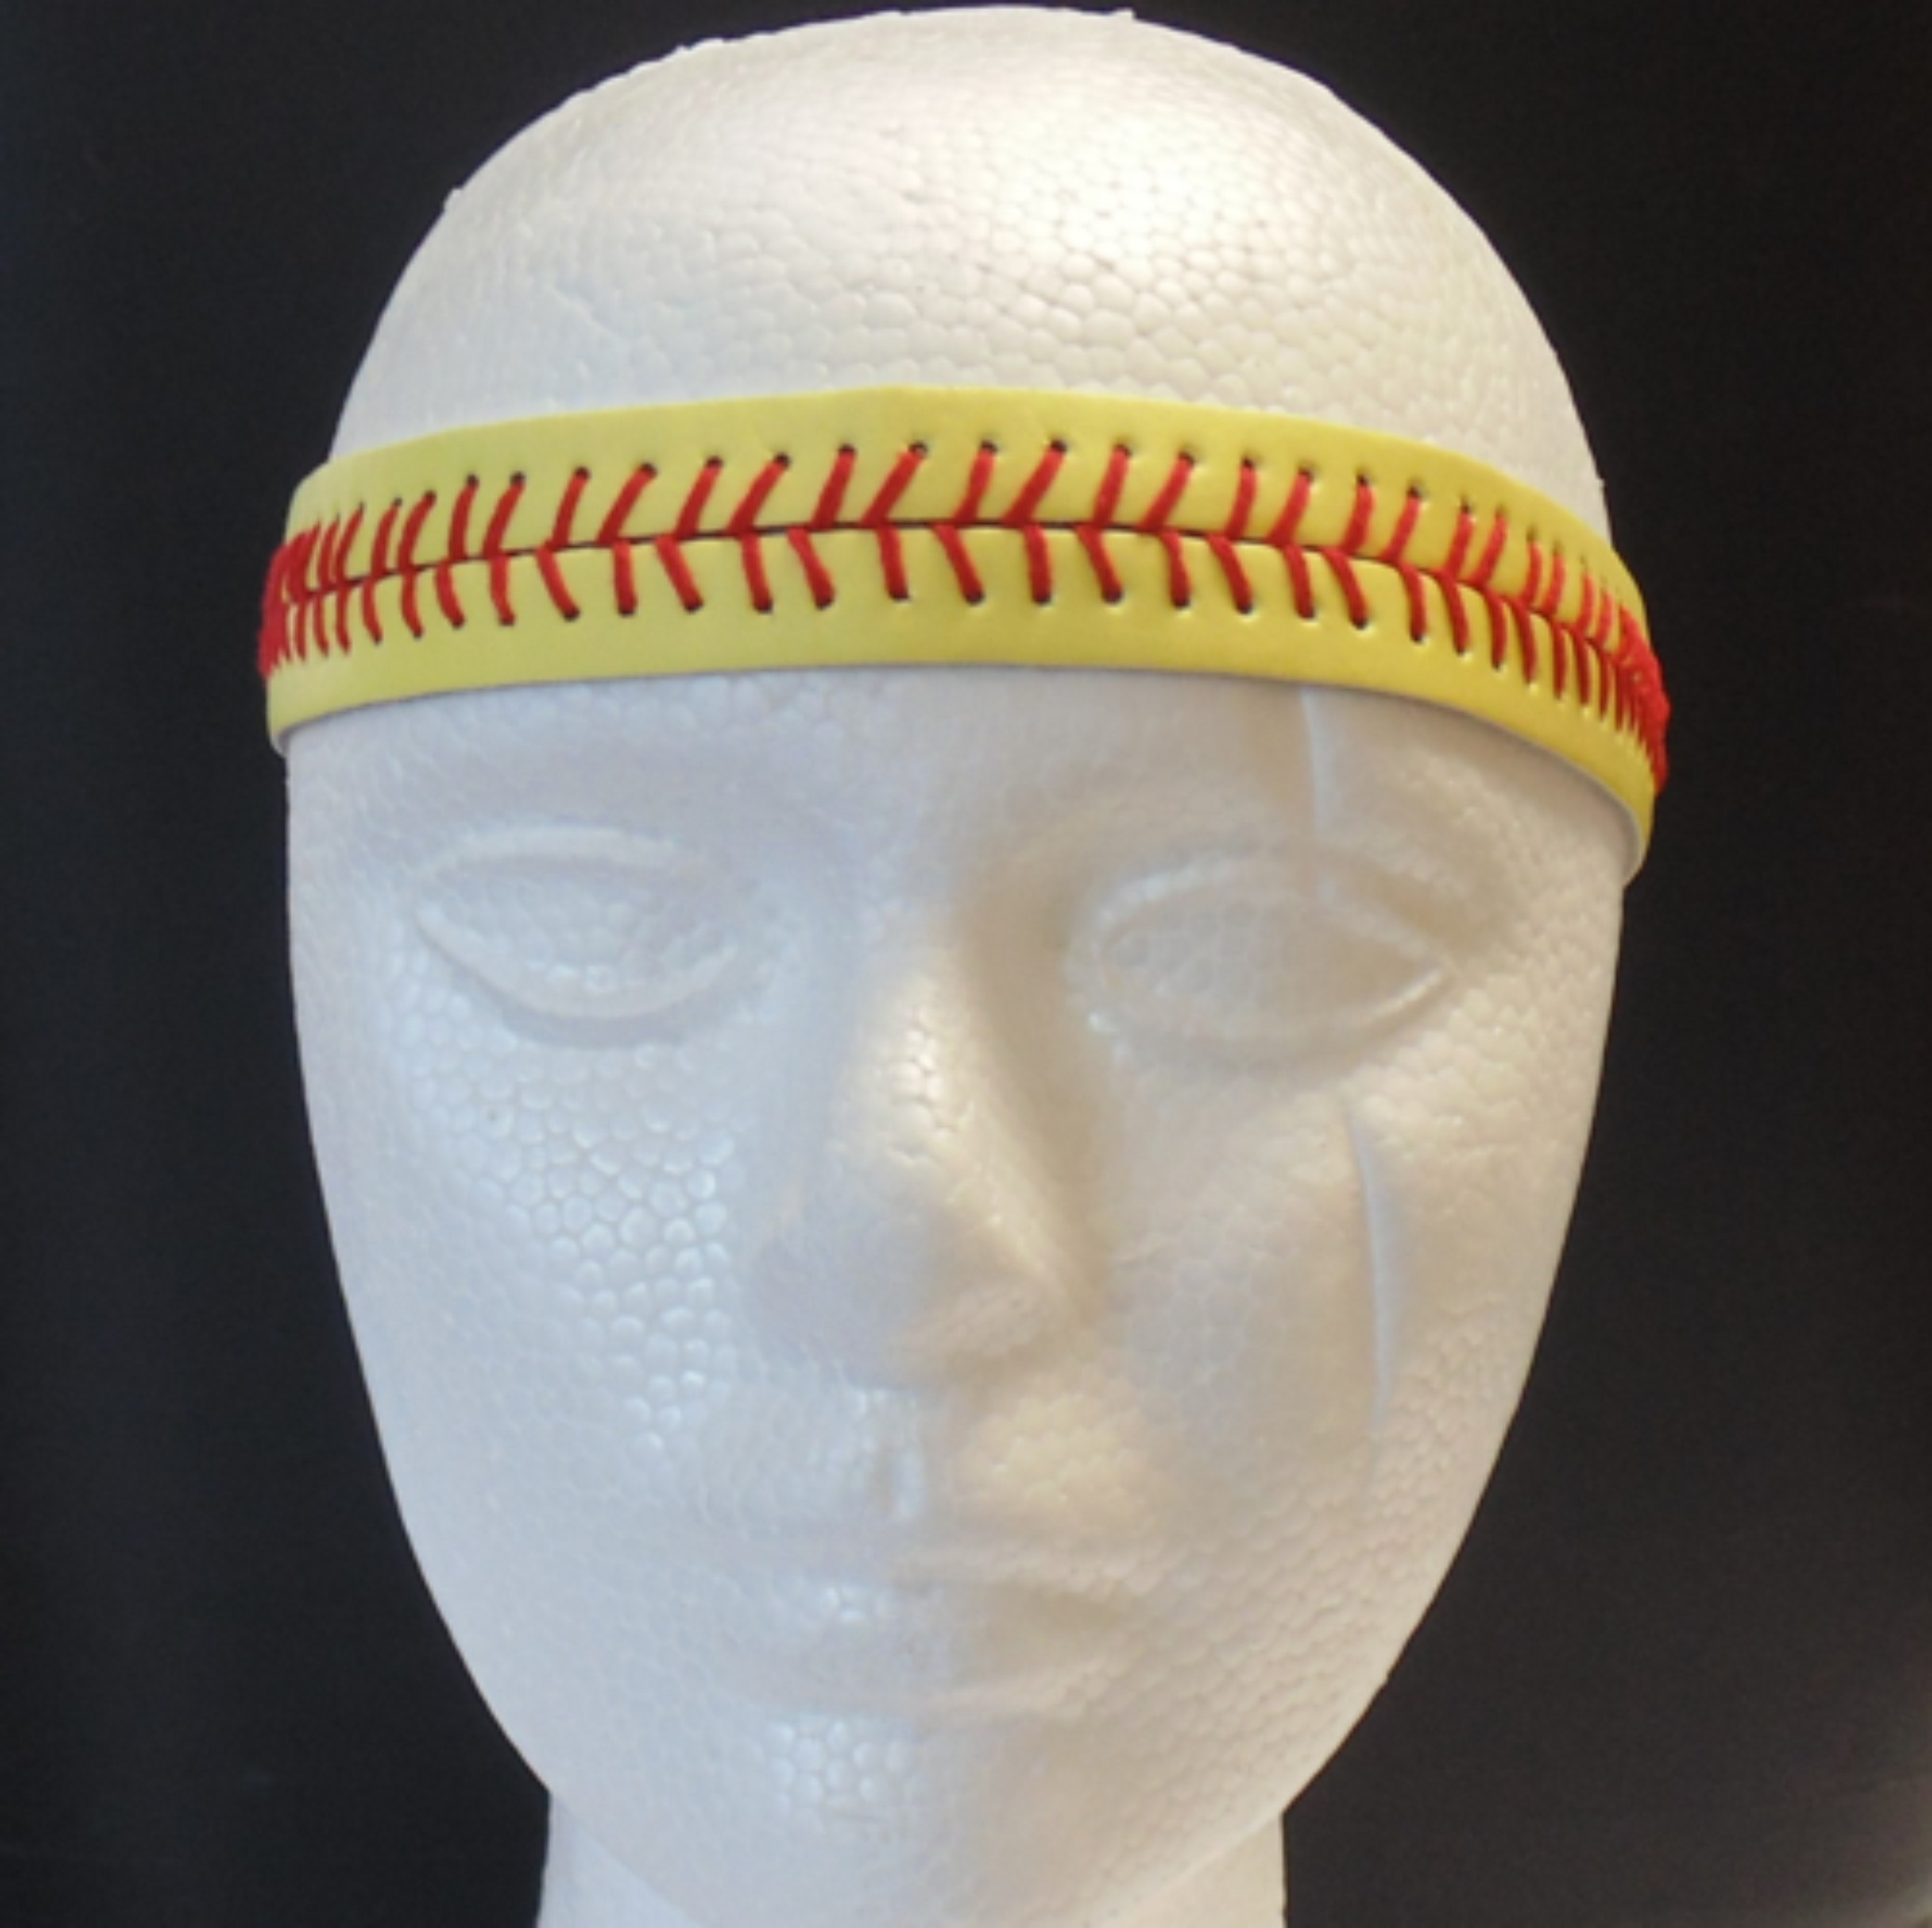 Leather Headband- Softball Stitches-3136